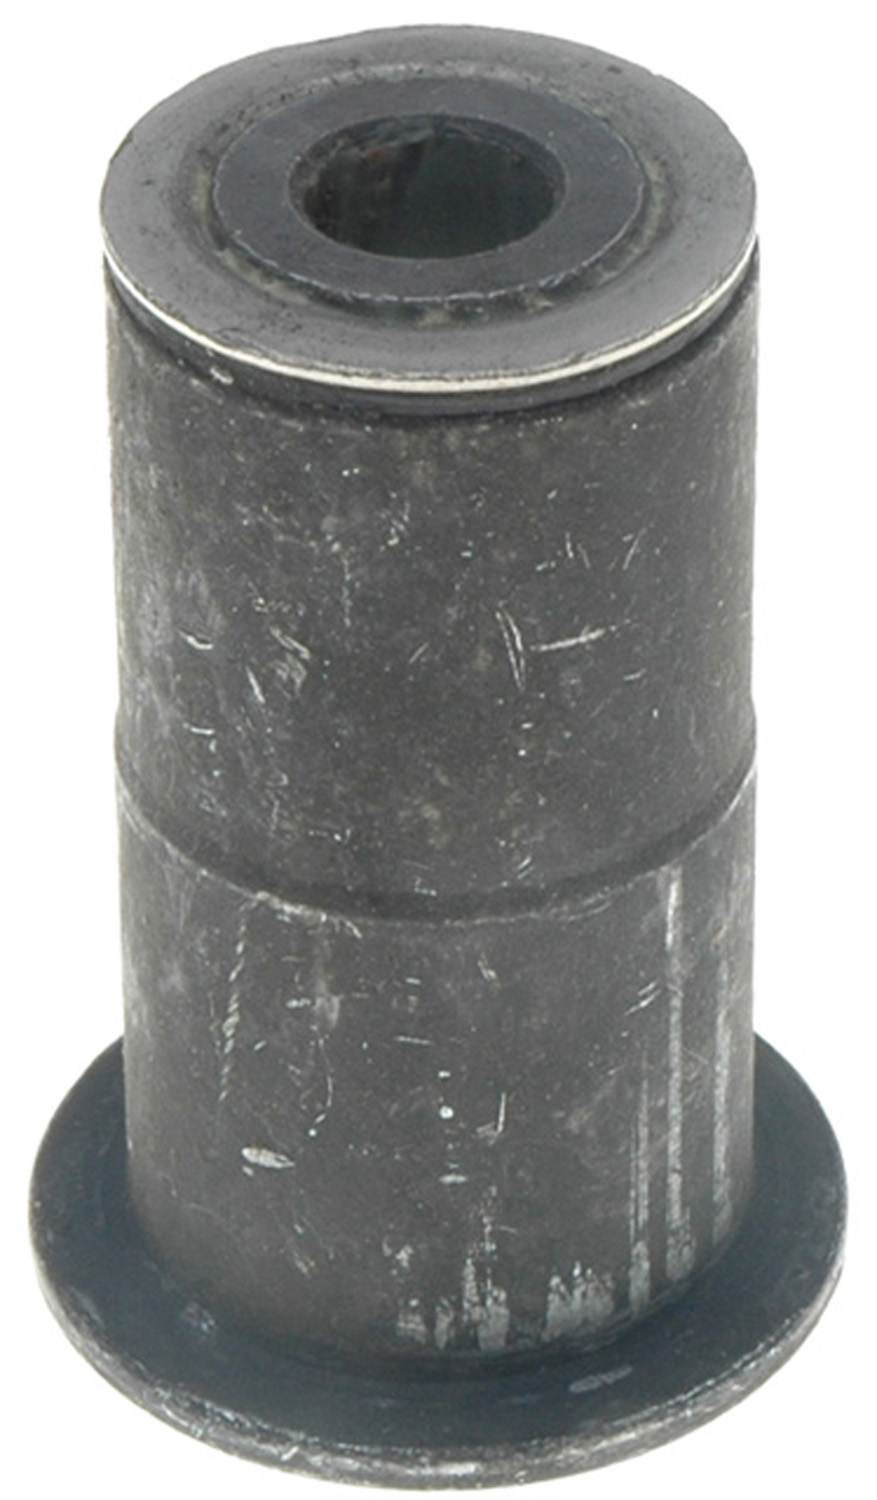 ACDELCO PROFESSIONAL - Steering Idler Arm Bushing - DCC 45G12025